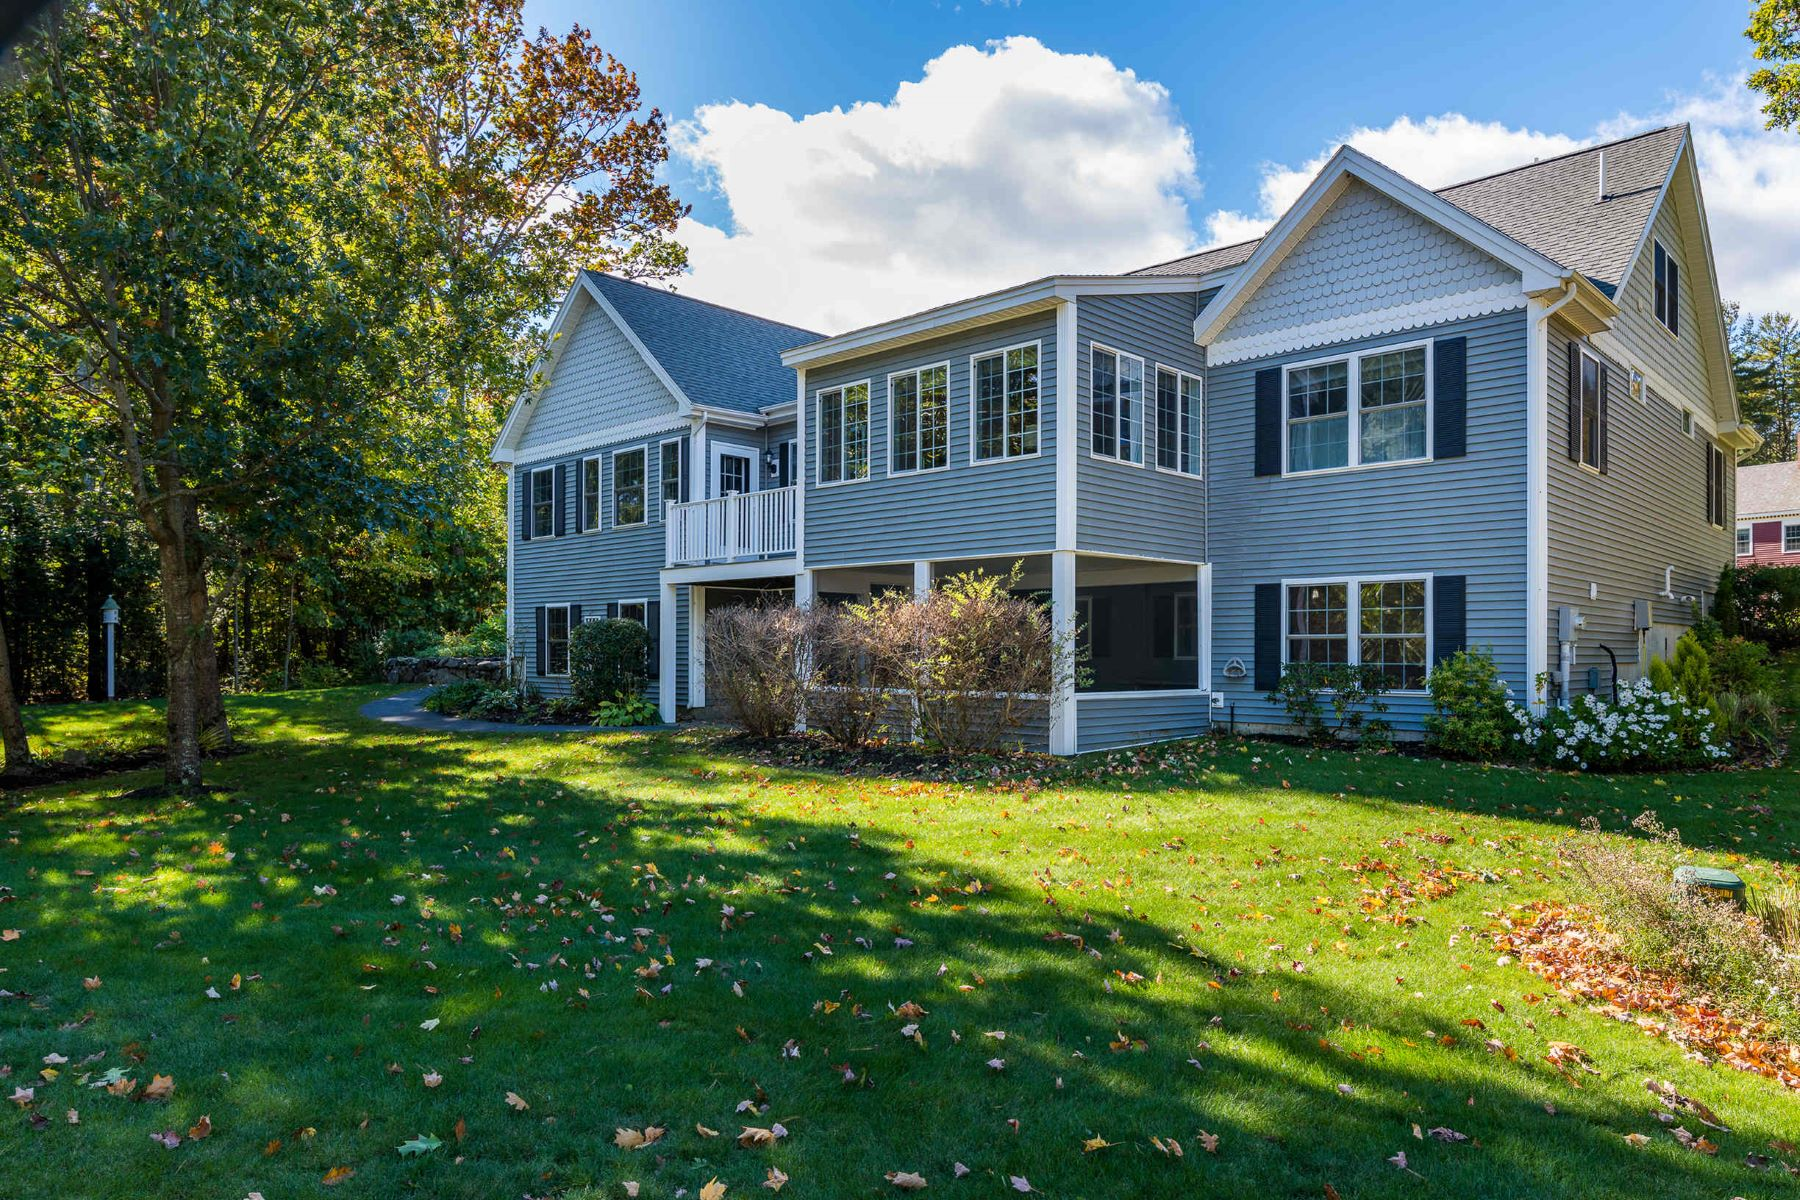 Single Family Homes for Sale at Custom Built Seaside Home at the Forest 6 Cherry Tree Trail, Wells, Maine 04090 United States